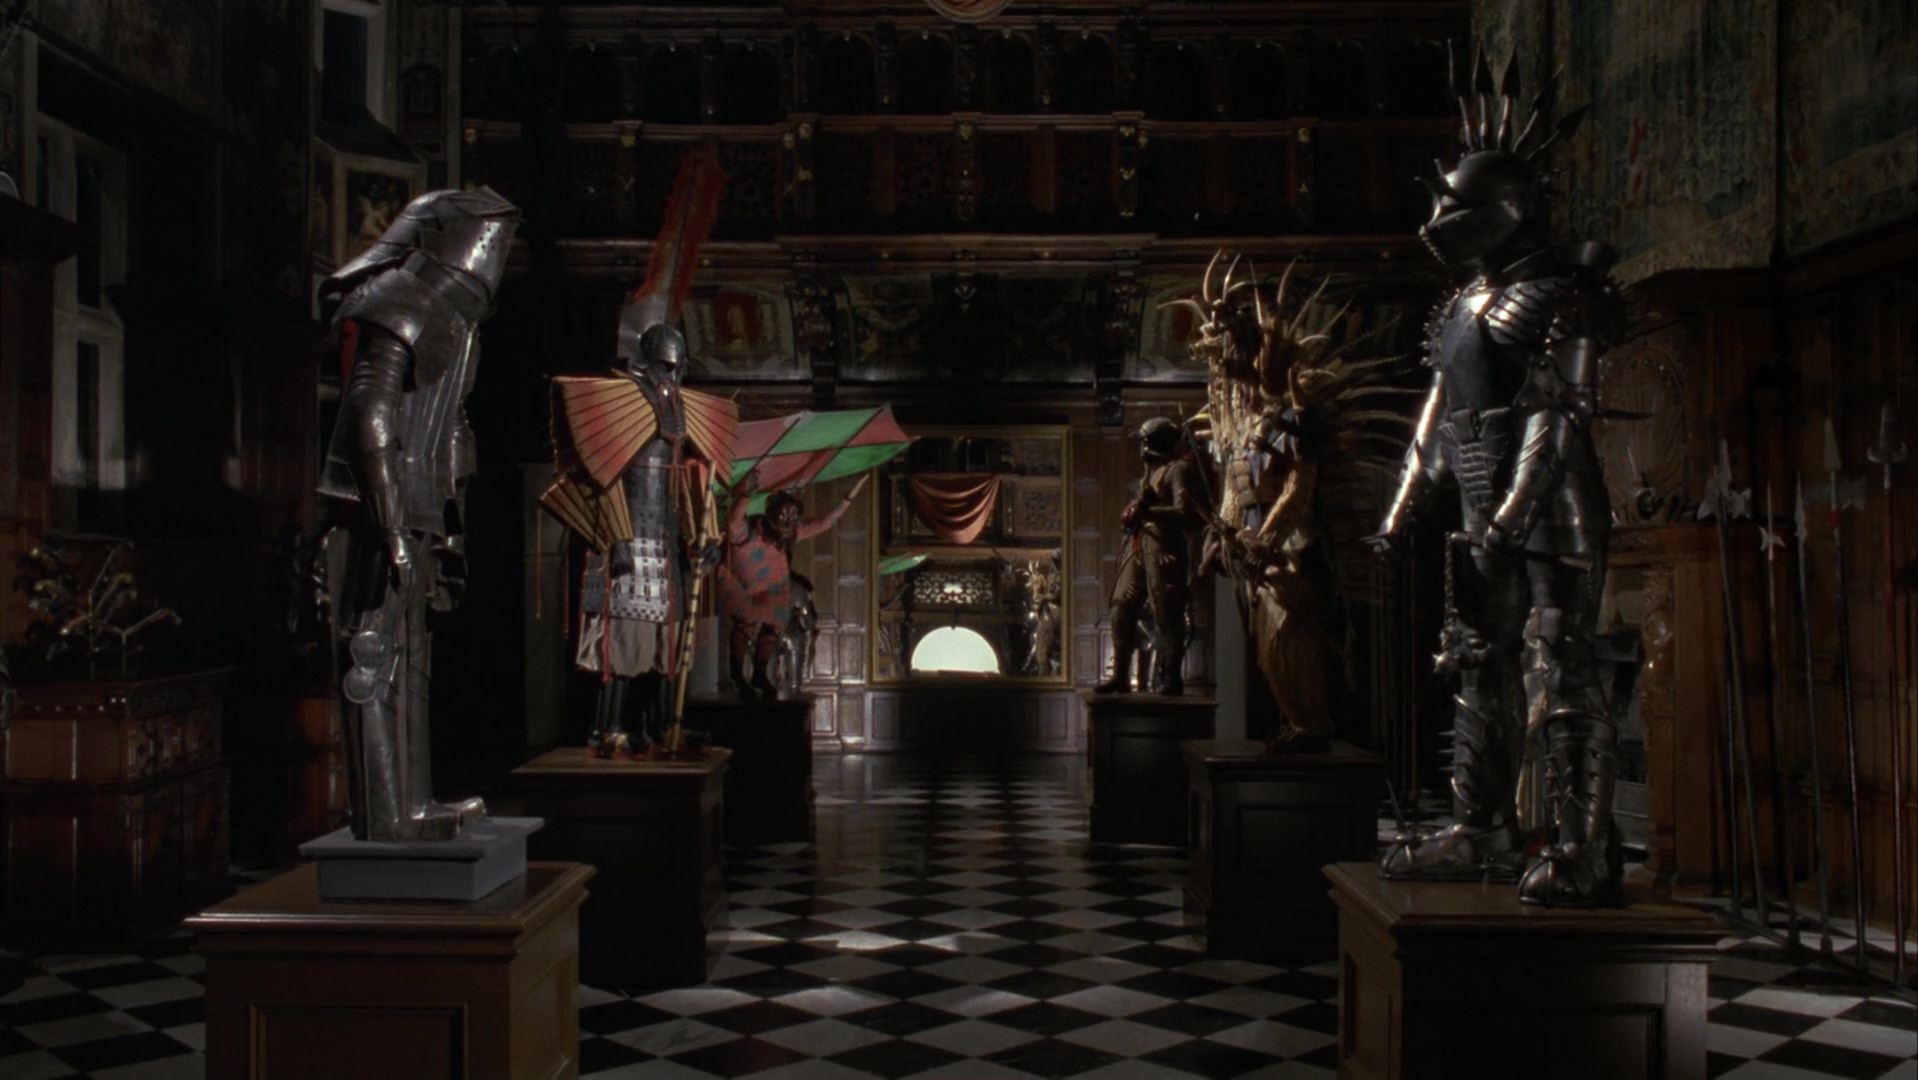 File:1989WayneManor3.jpg